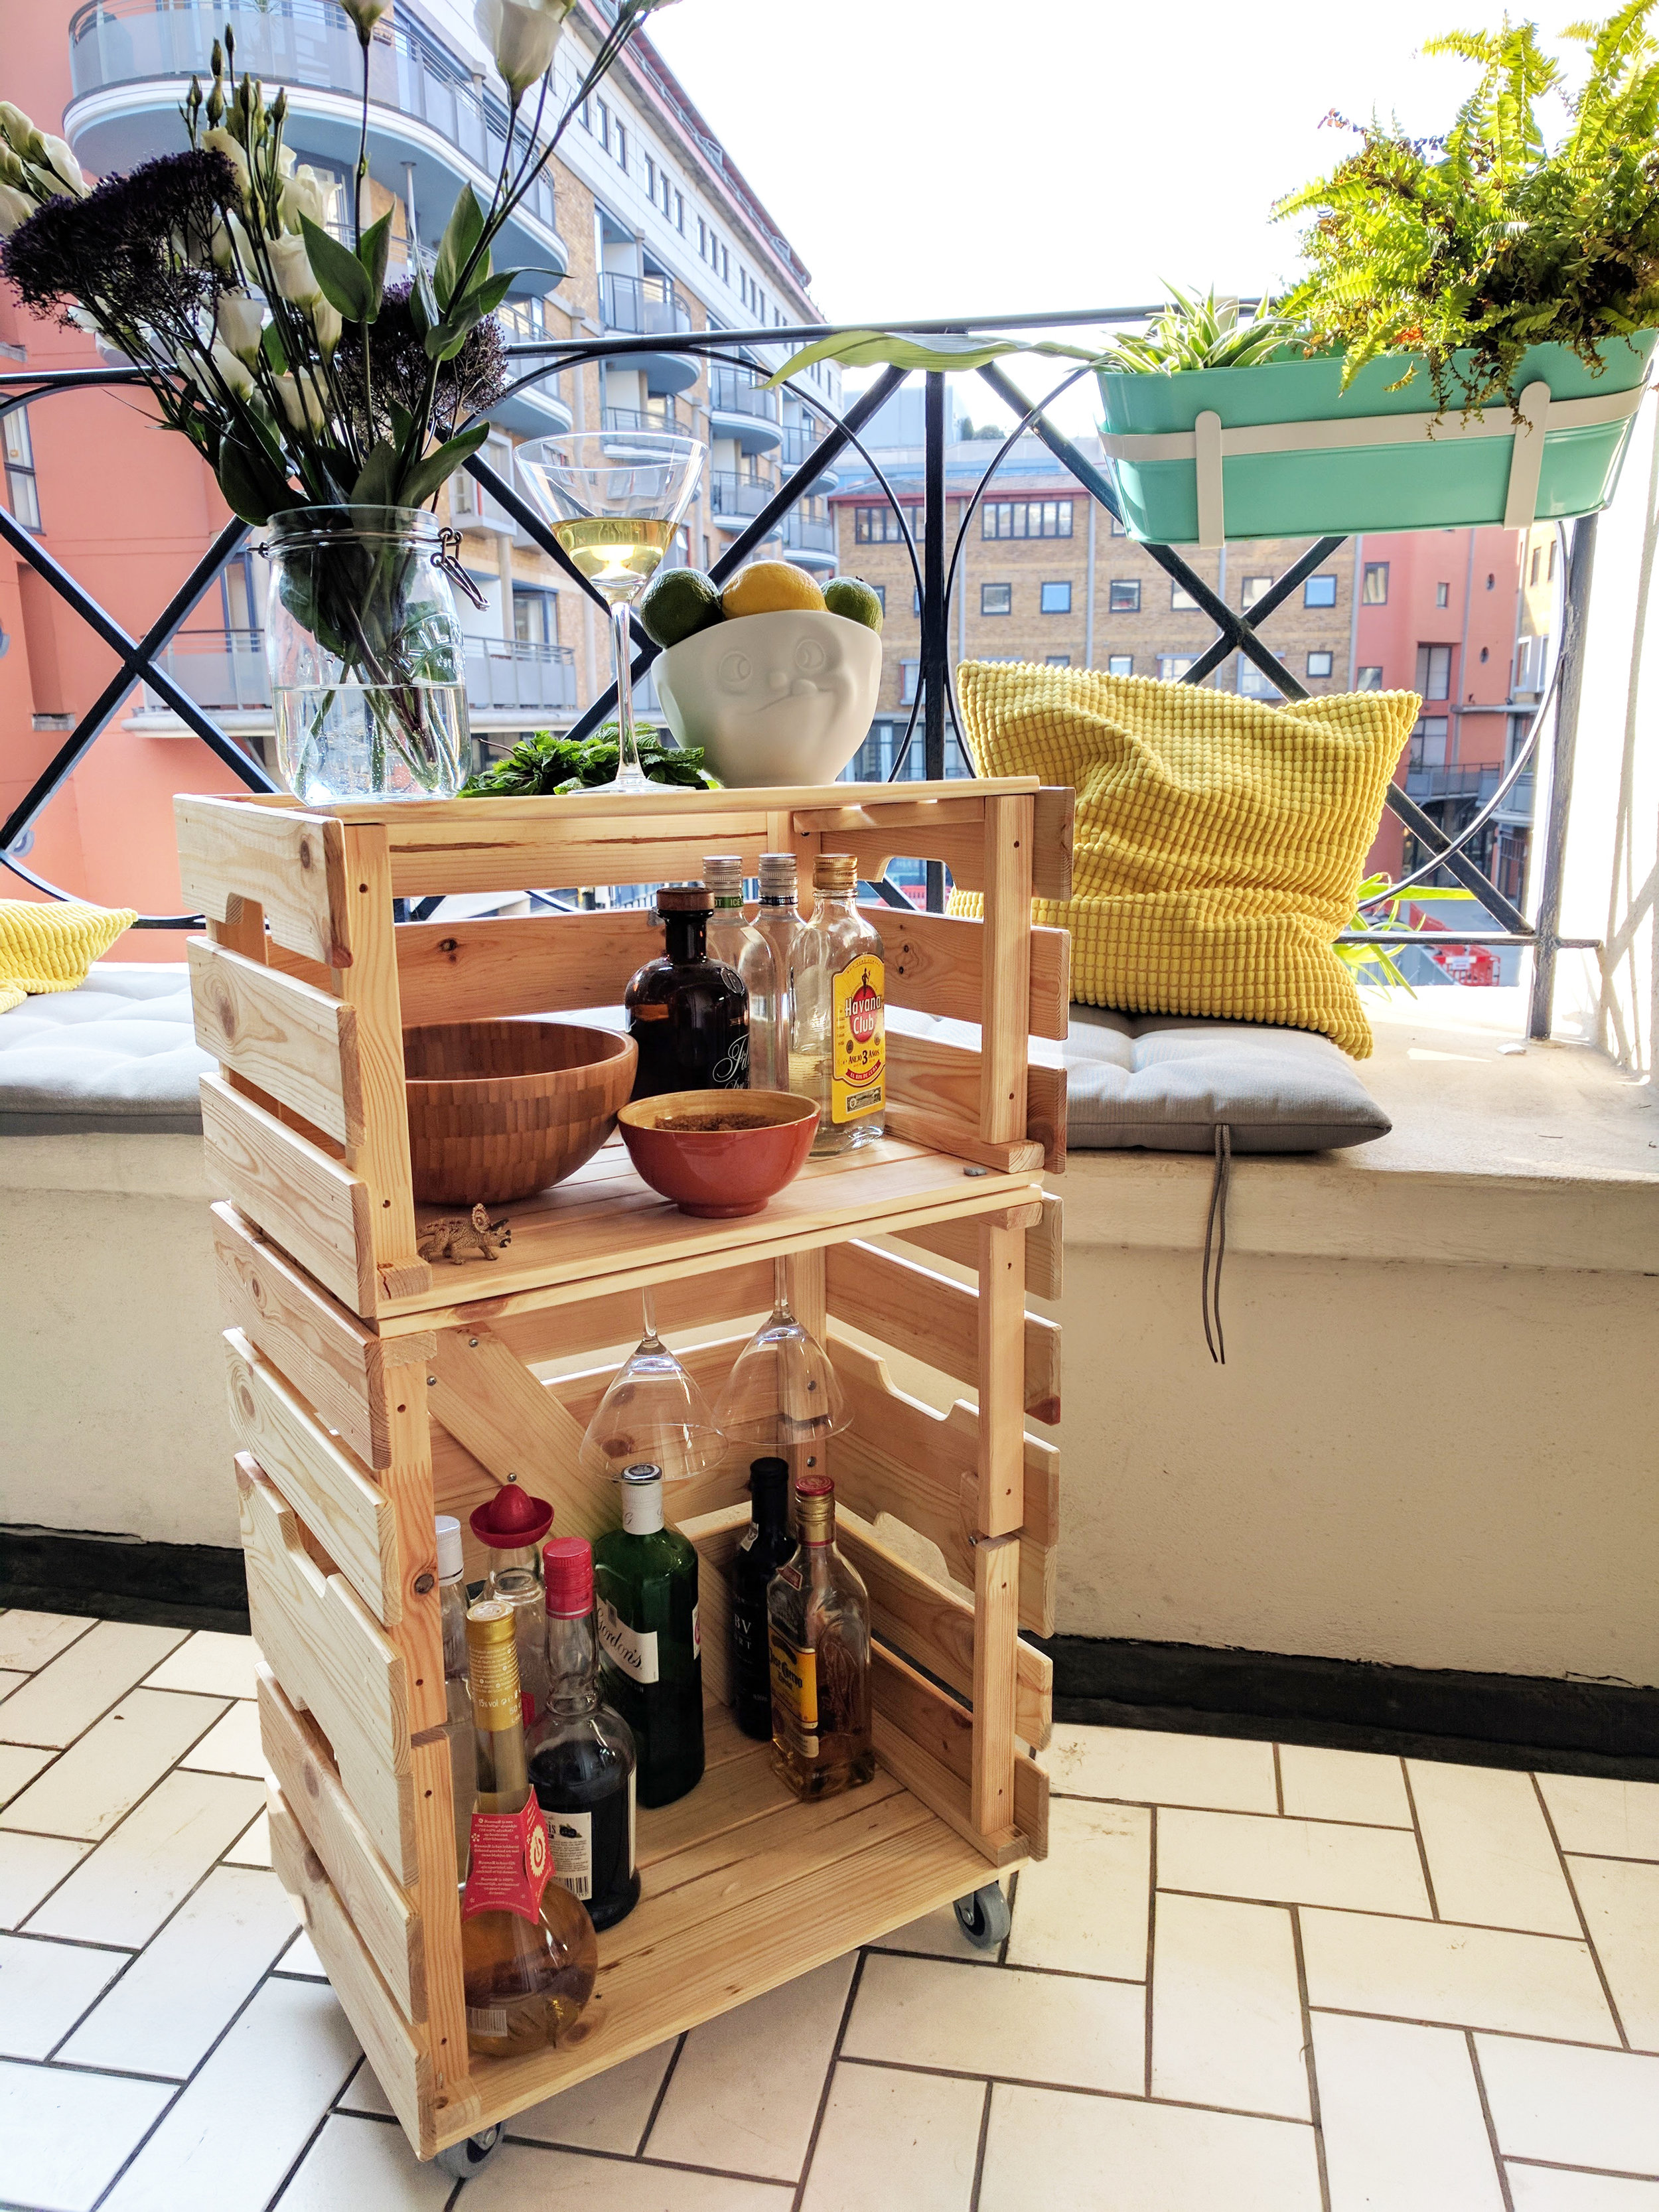 Cocktailcart out of refurbished wooden crates on sunny balcony